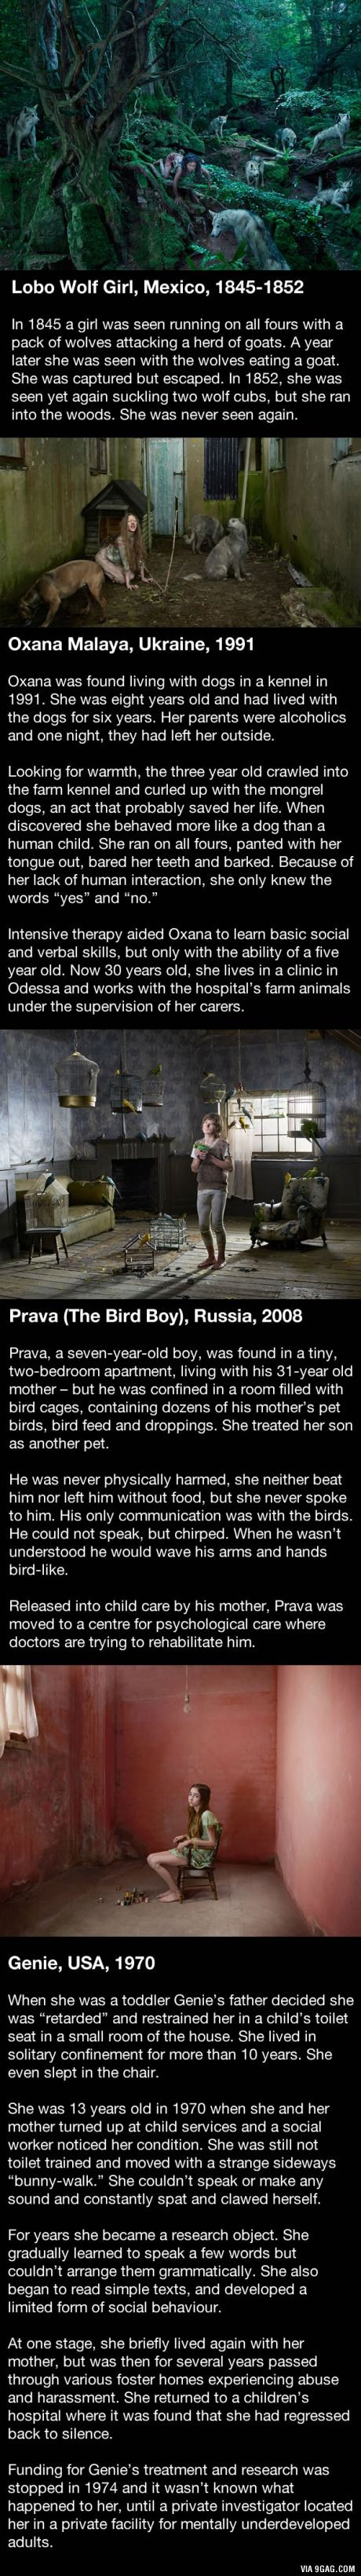 Uncategorized Spooky Stories For Kids Under 10 290 best deliciously dark creepypasta images on pinterest creepy shocking real stories of feral children told with photos